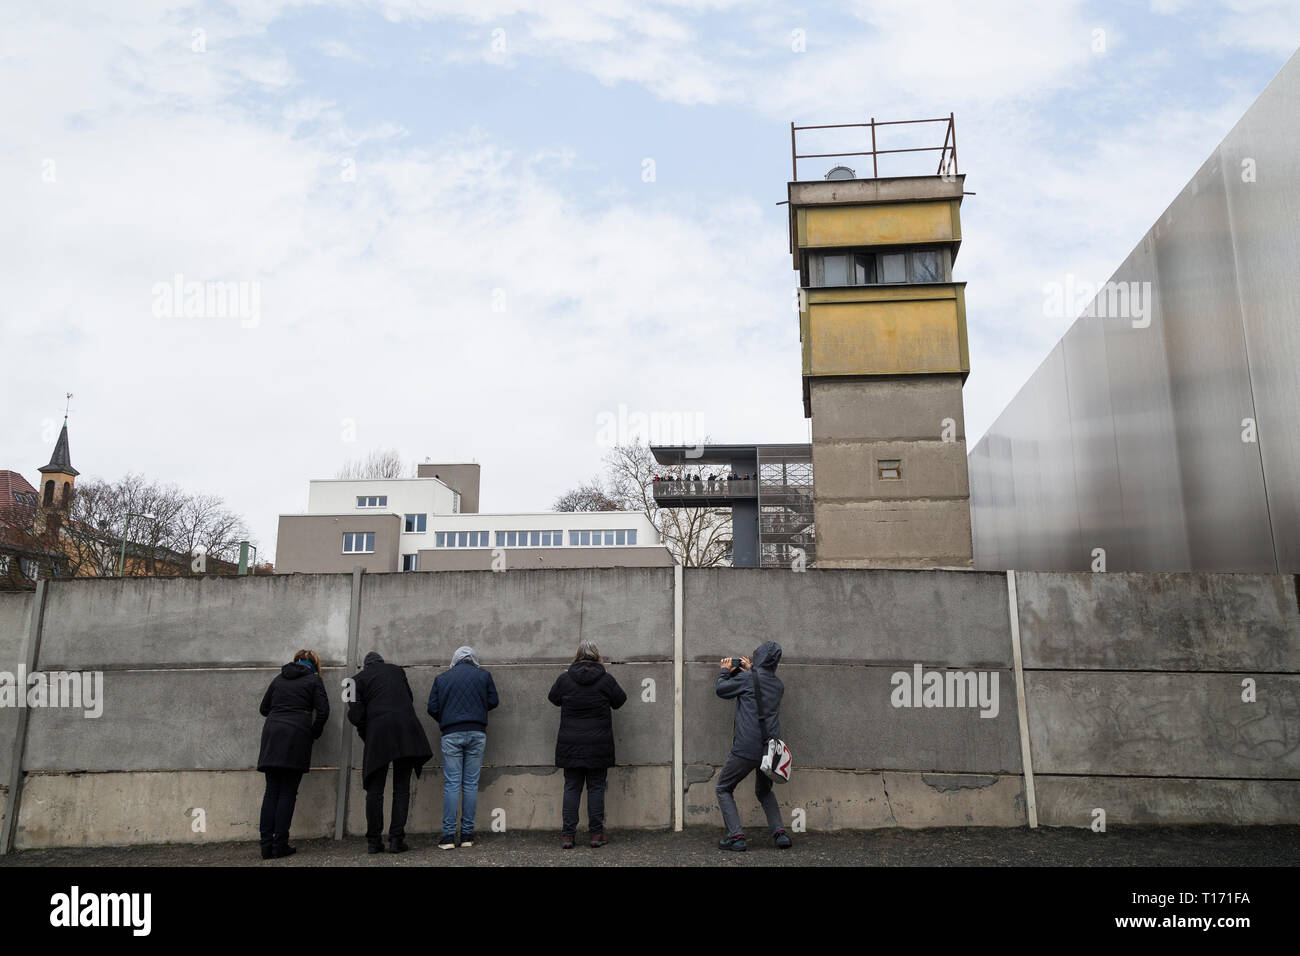 People at the Berlin Wall Memorial (Berliner Mauer) in Berlin, Germany. Watchtower is behind the Berlin Wall. Documentation Center is in the backgroun - Stock Image